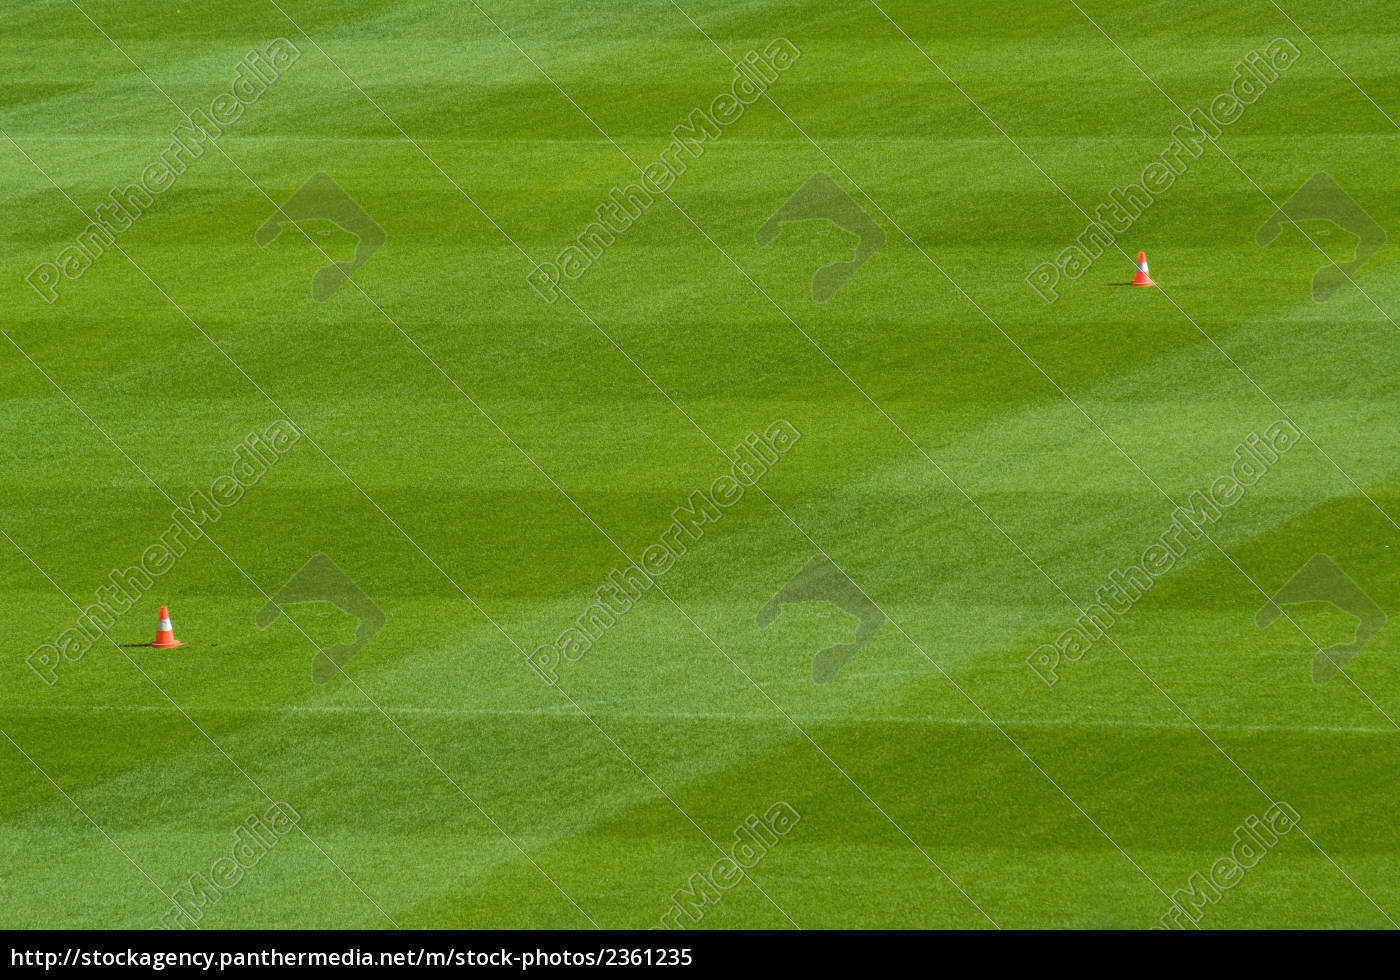 lawn, of, the, football, field - 2361235